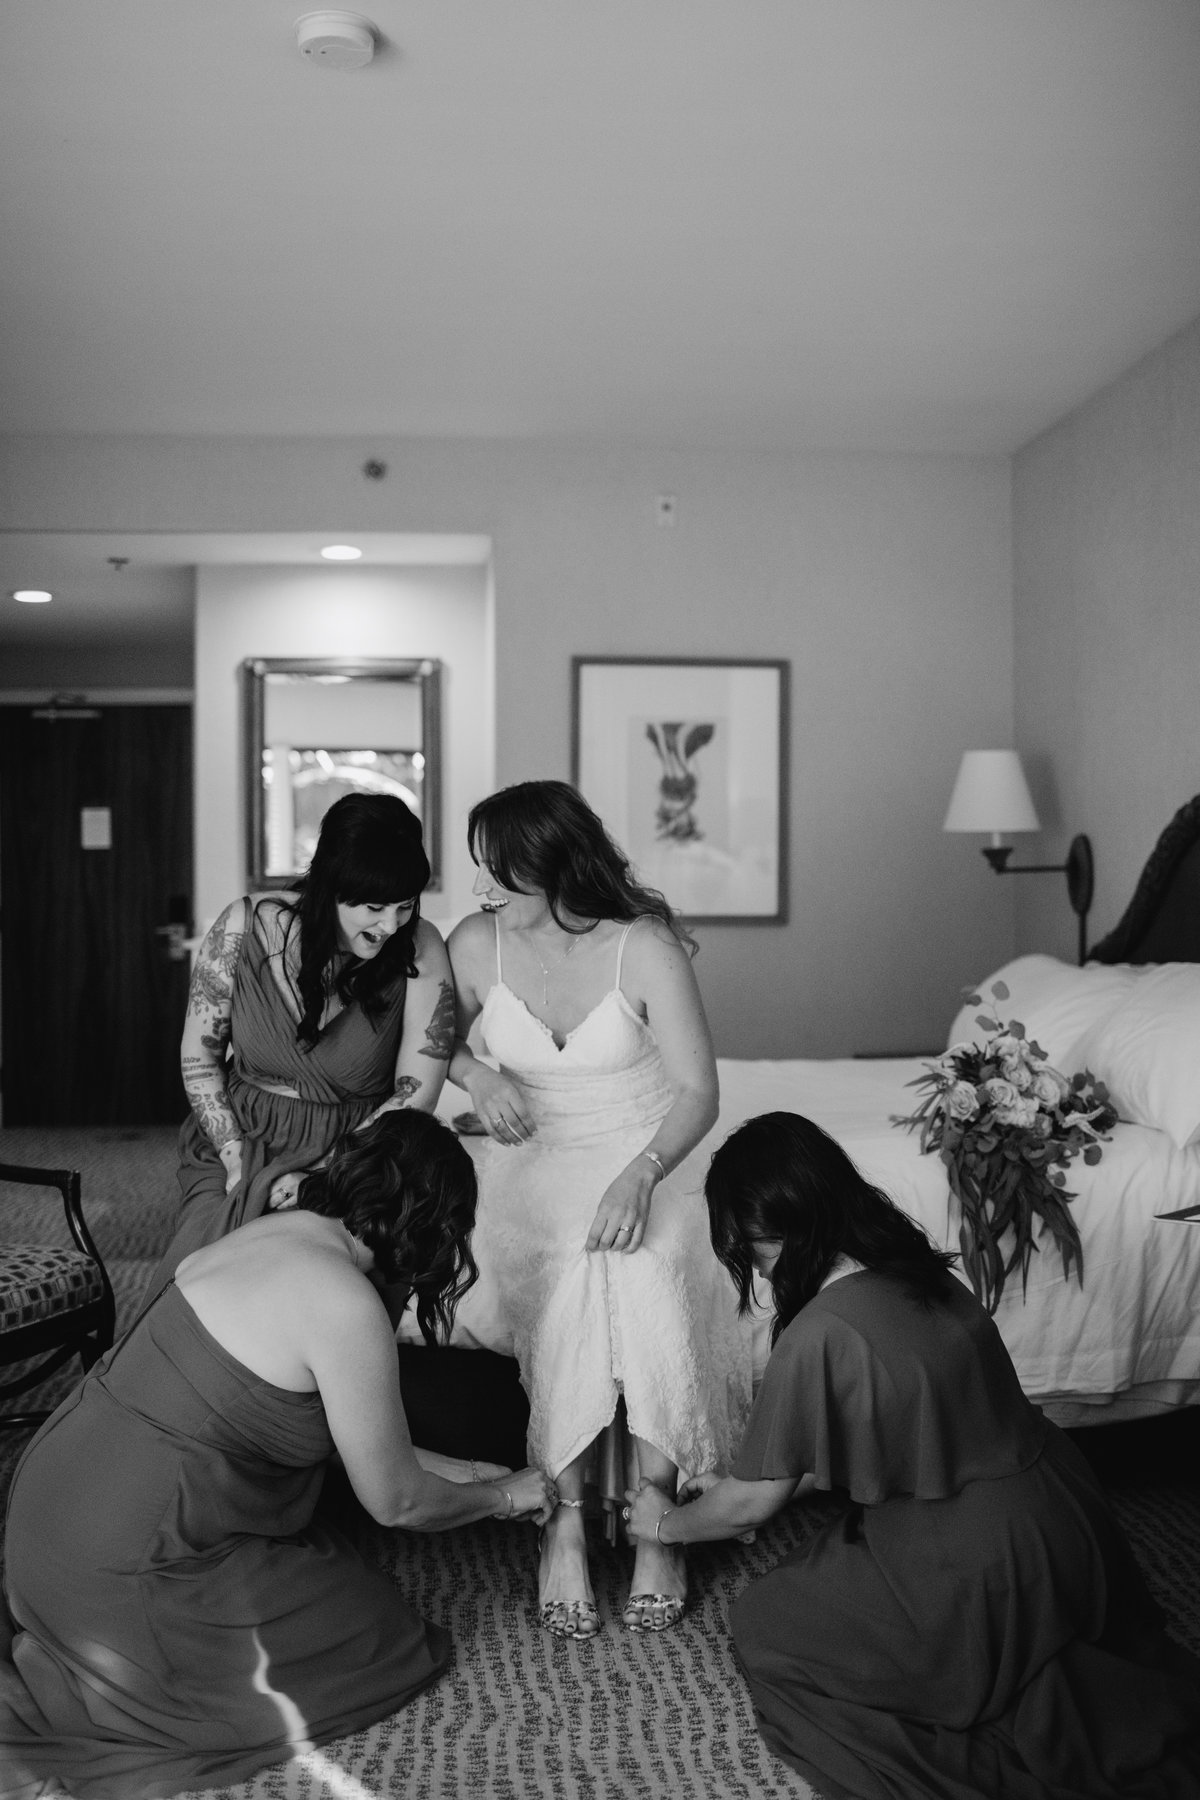 Katherine_beth_photography_San_diego_wedding_photographer_san_diego_wedding_ZLAC_Wedding_002